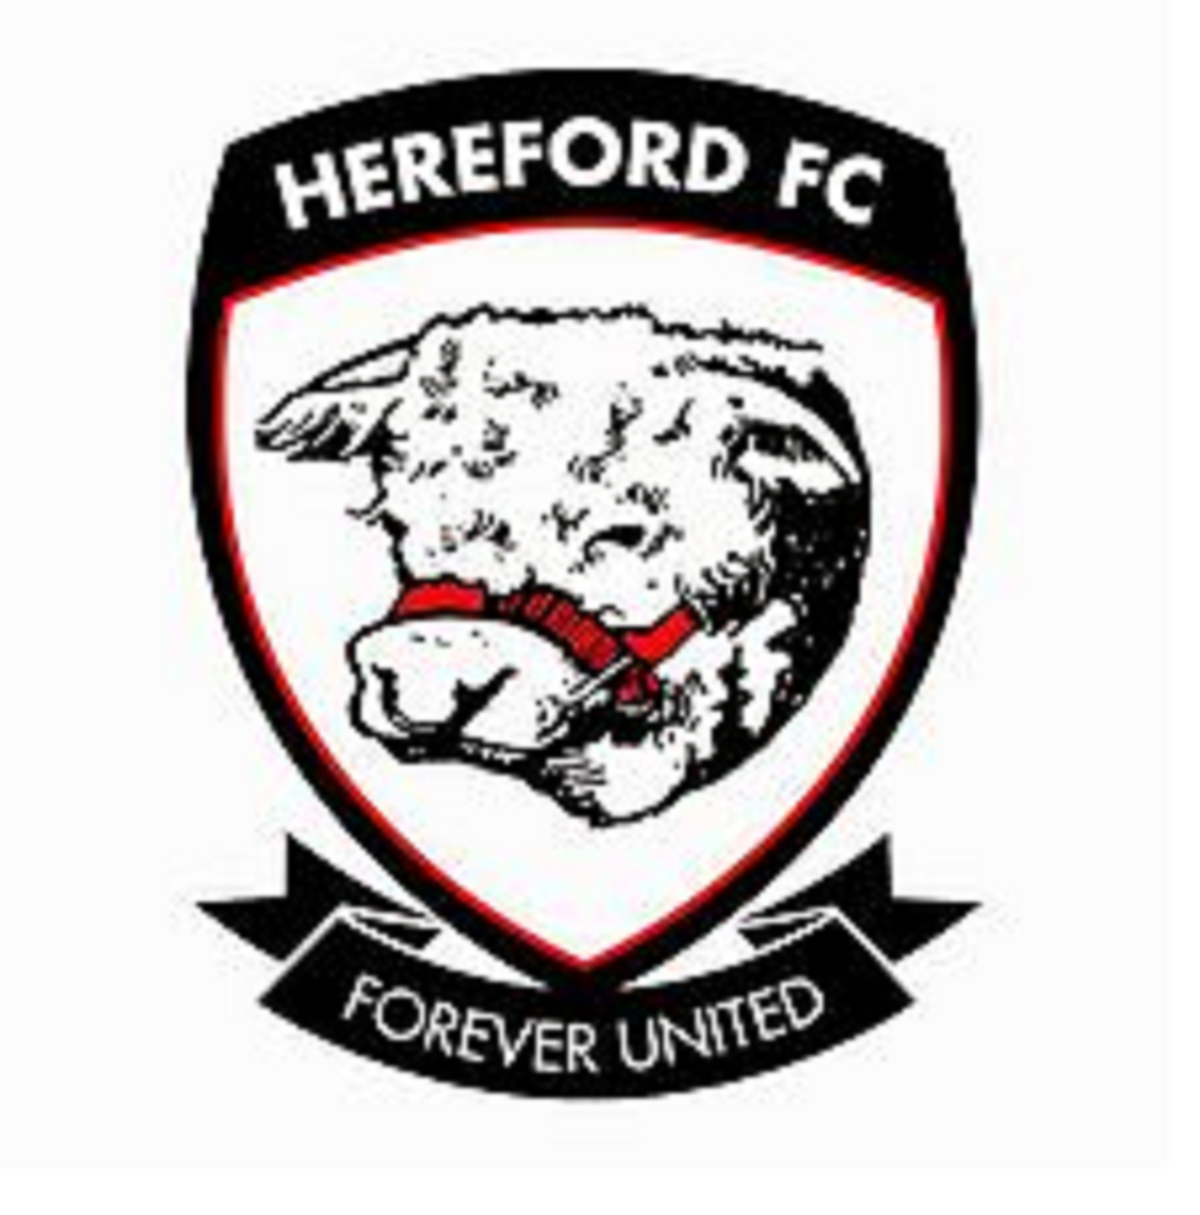 Two new directors have been appointed at Hereford FC